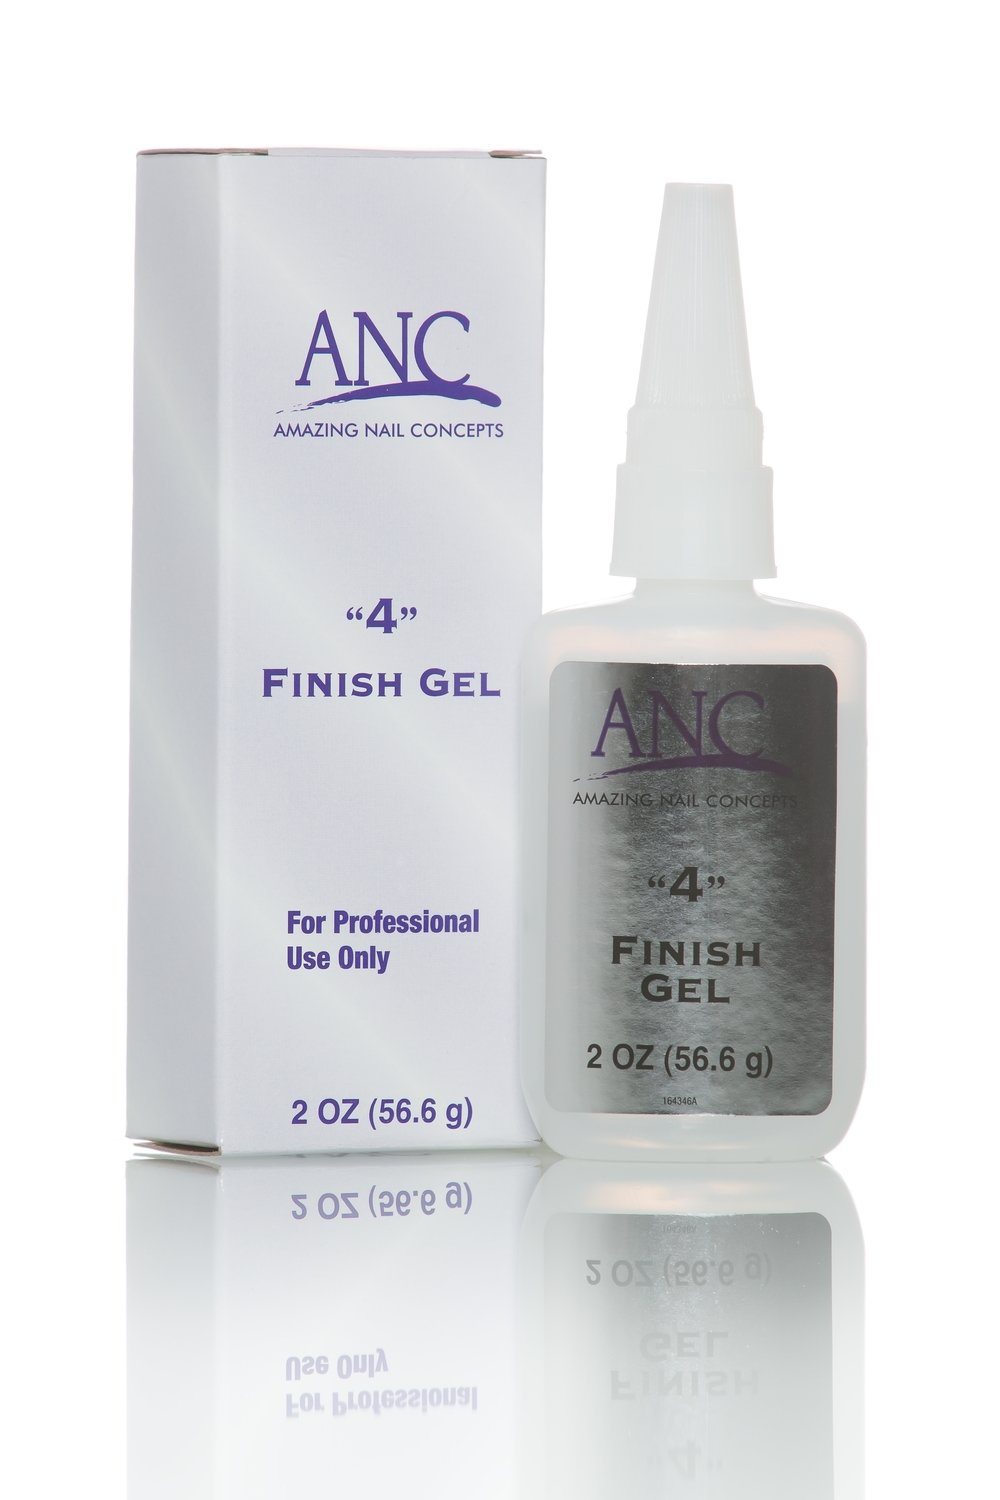 ANC Dip Essential Liquids 02 fl oz Refill - Step #4 Finish Gel